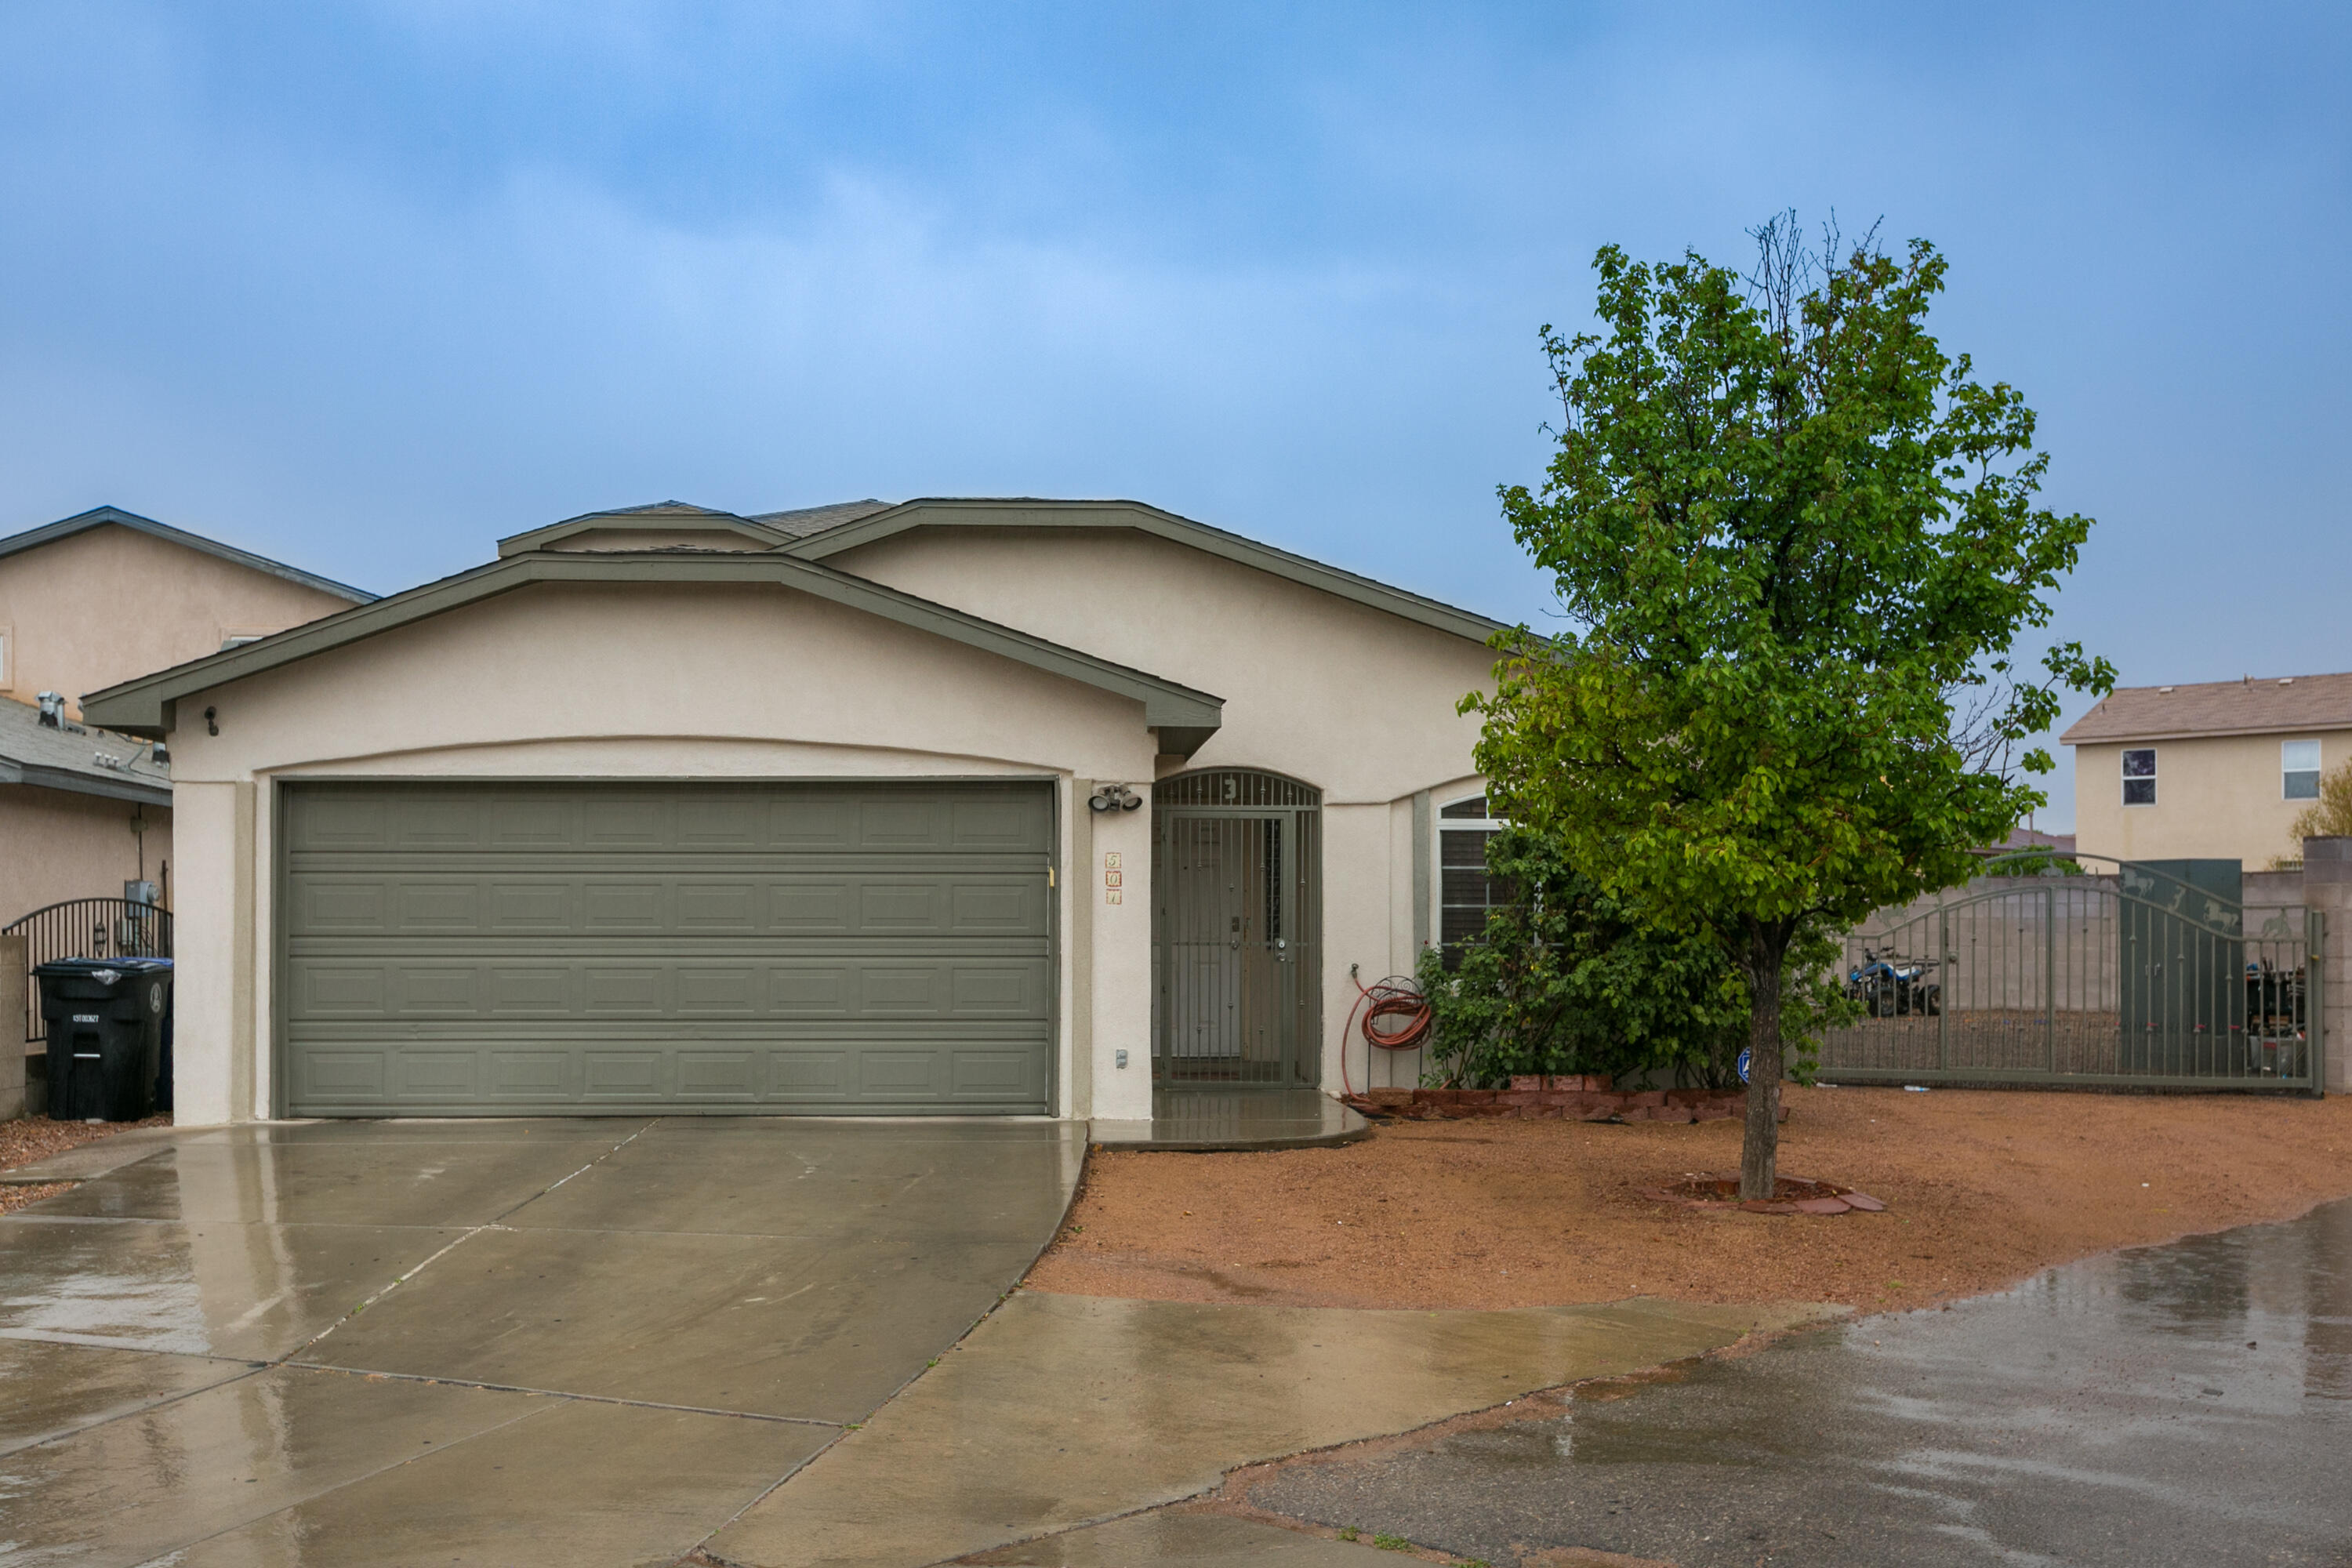 Beautiful move-in-ready Fuller home located on a quiet cul-de-sac in the Eldorado Park community. Home features 2,153sf with 4 bedrooms, 2.5 bathroom and a 2 car garage. Great living area with a built-in media center and tile floors. Updated kitchen with refinished white cabinetry, granite countertops, stainless steel gas range, microwave, dishwasher and prep island with seating space. Family dining space right off of the kitchen. Upstairs find the private owners suite with laminate wood floors, a large walk-in closet and bath. Bath hosts his/hers sinks, a relaxing garden tub and walk-in shower. 3 additional guest rooms with space for everyone. Remodeled guest bath with his/hers sinks and a shower/tub combo with custom tile work.  Large covered patio w/ extended pergola & side yard access!